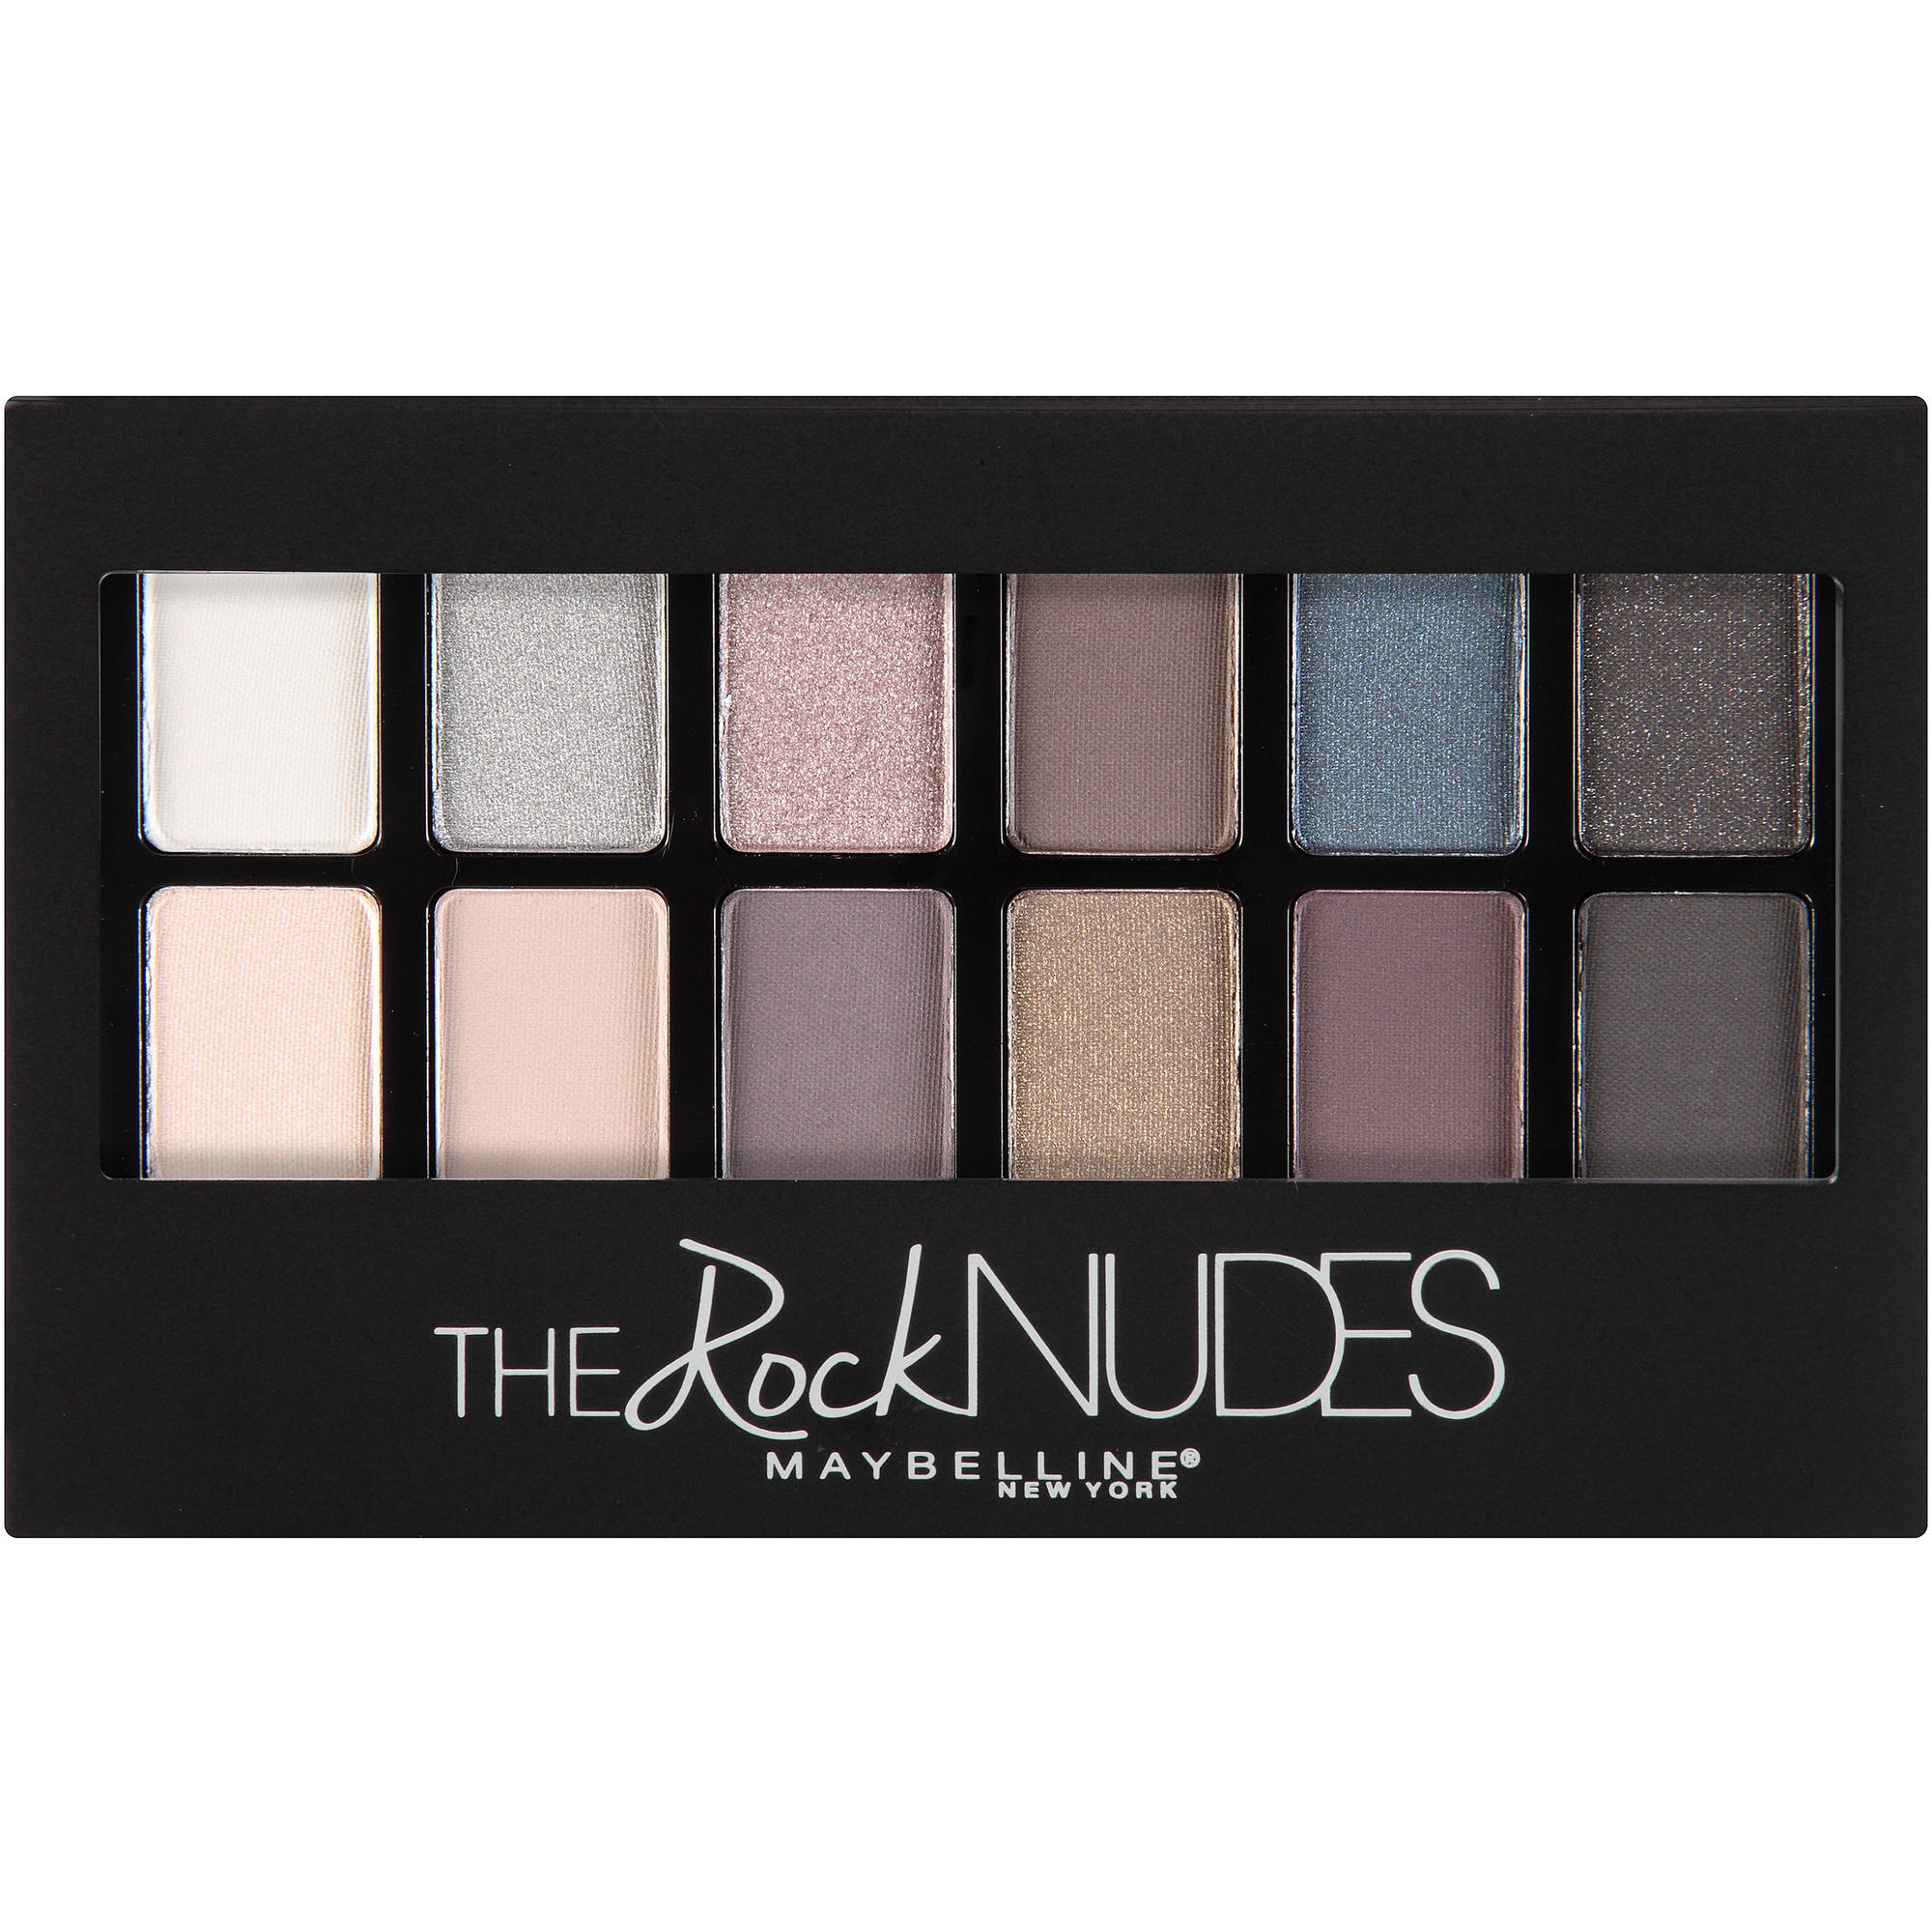 Maybelline New York The Rock Nudes Palette, 0.35 Oz